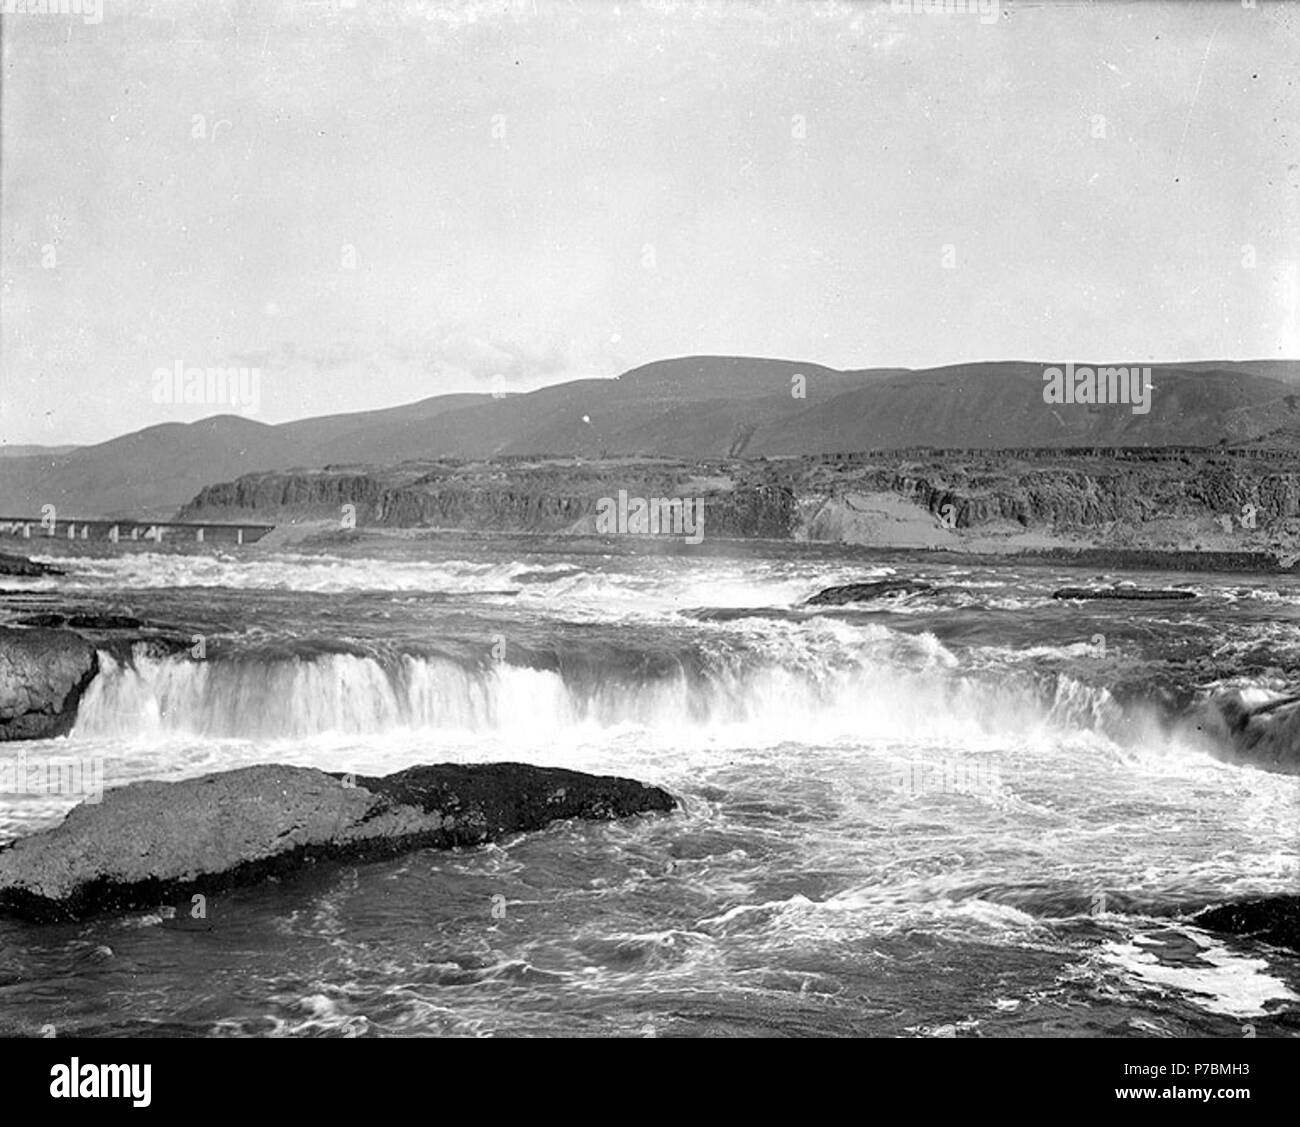 English: Upper Celilo Falls, Columbia River, Washington, ca